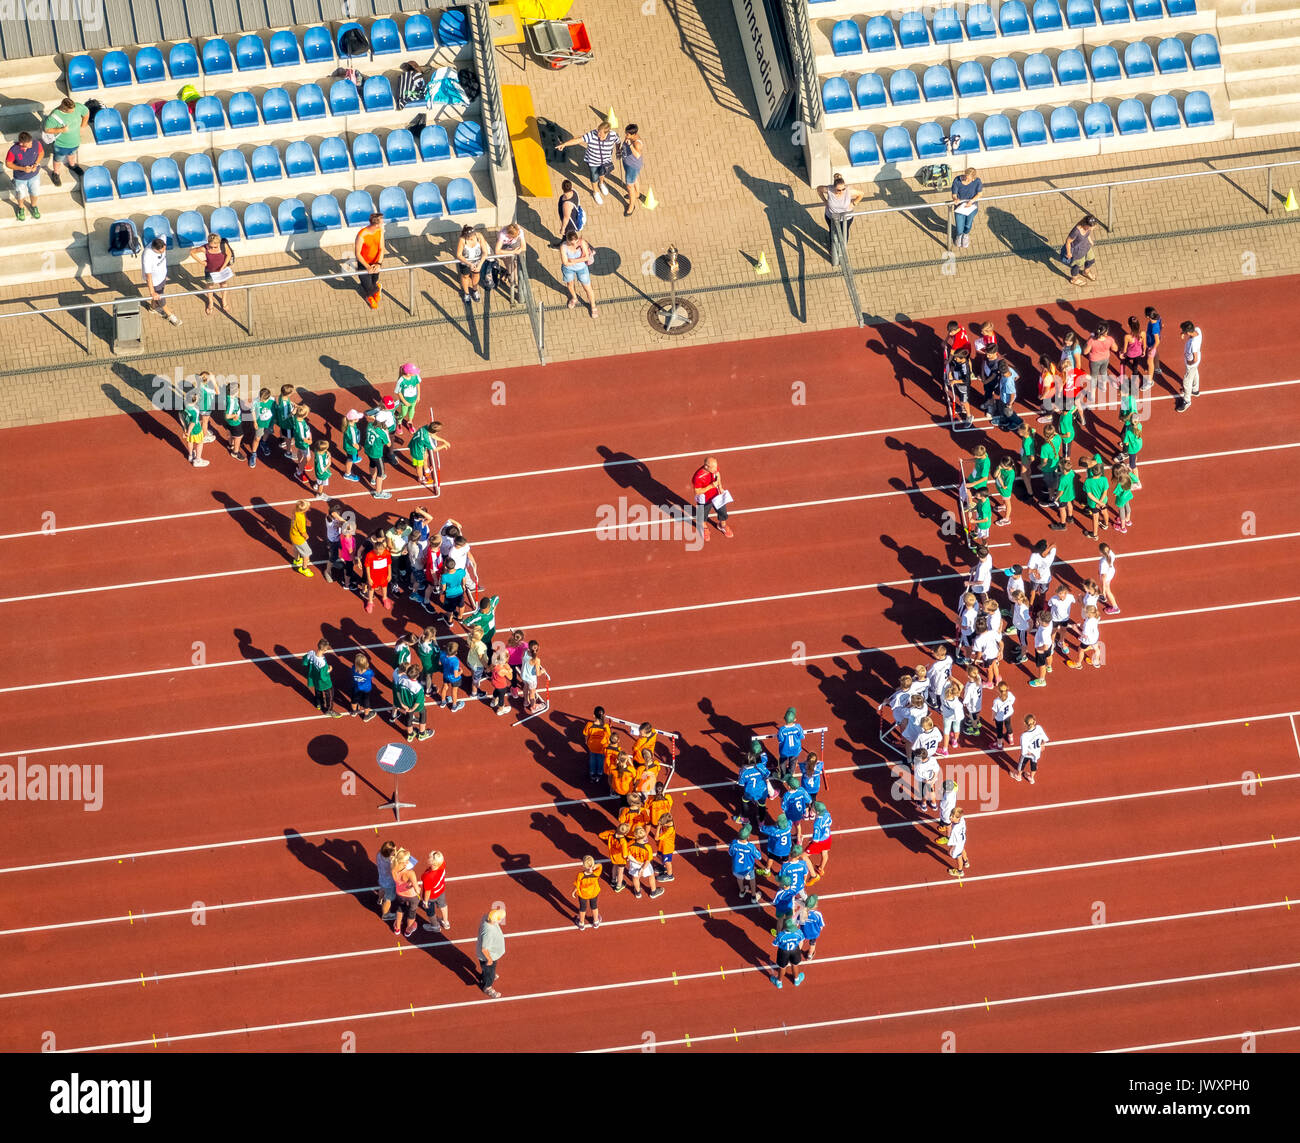 Competitions and organizers announcement on the red running track in Jahnstadion Bottrop, Federal Youth Games, Spportler, sports competitions, school  - Stock Image